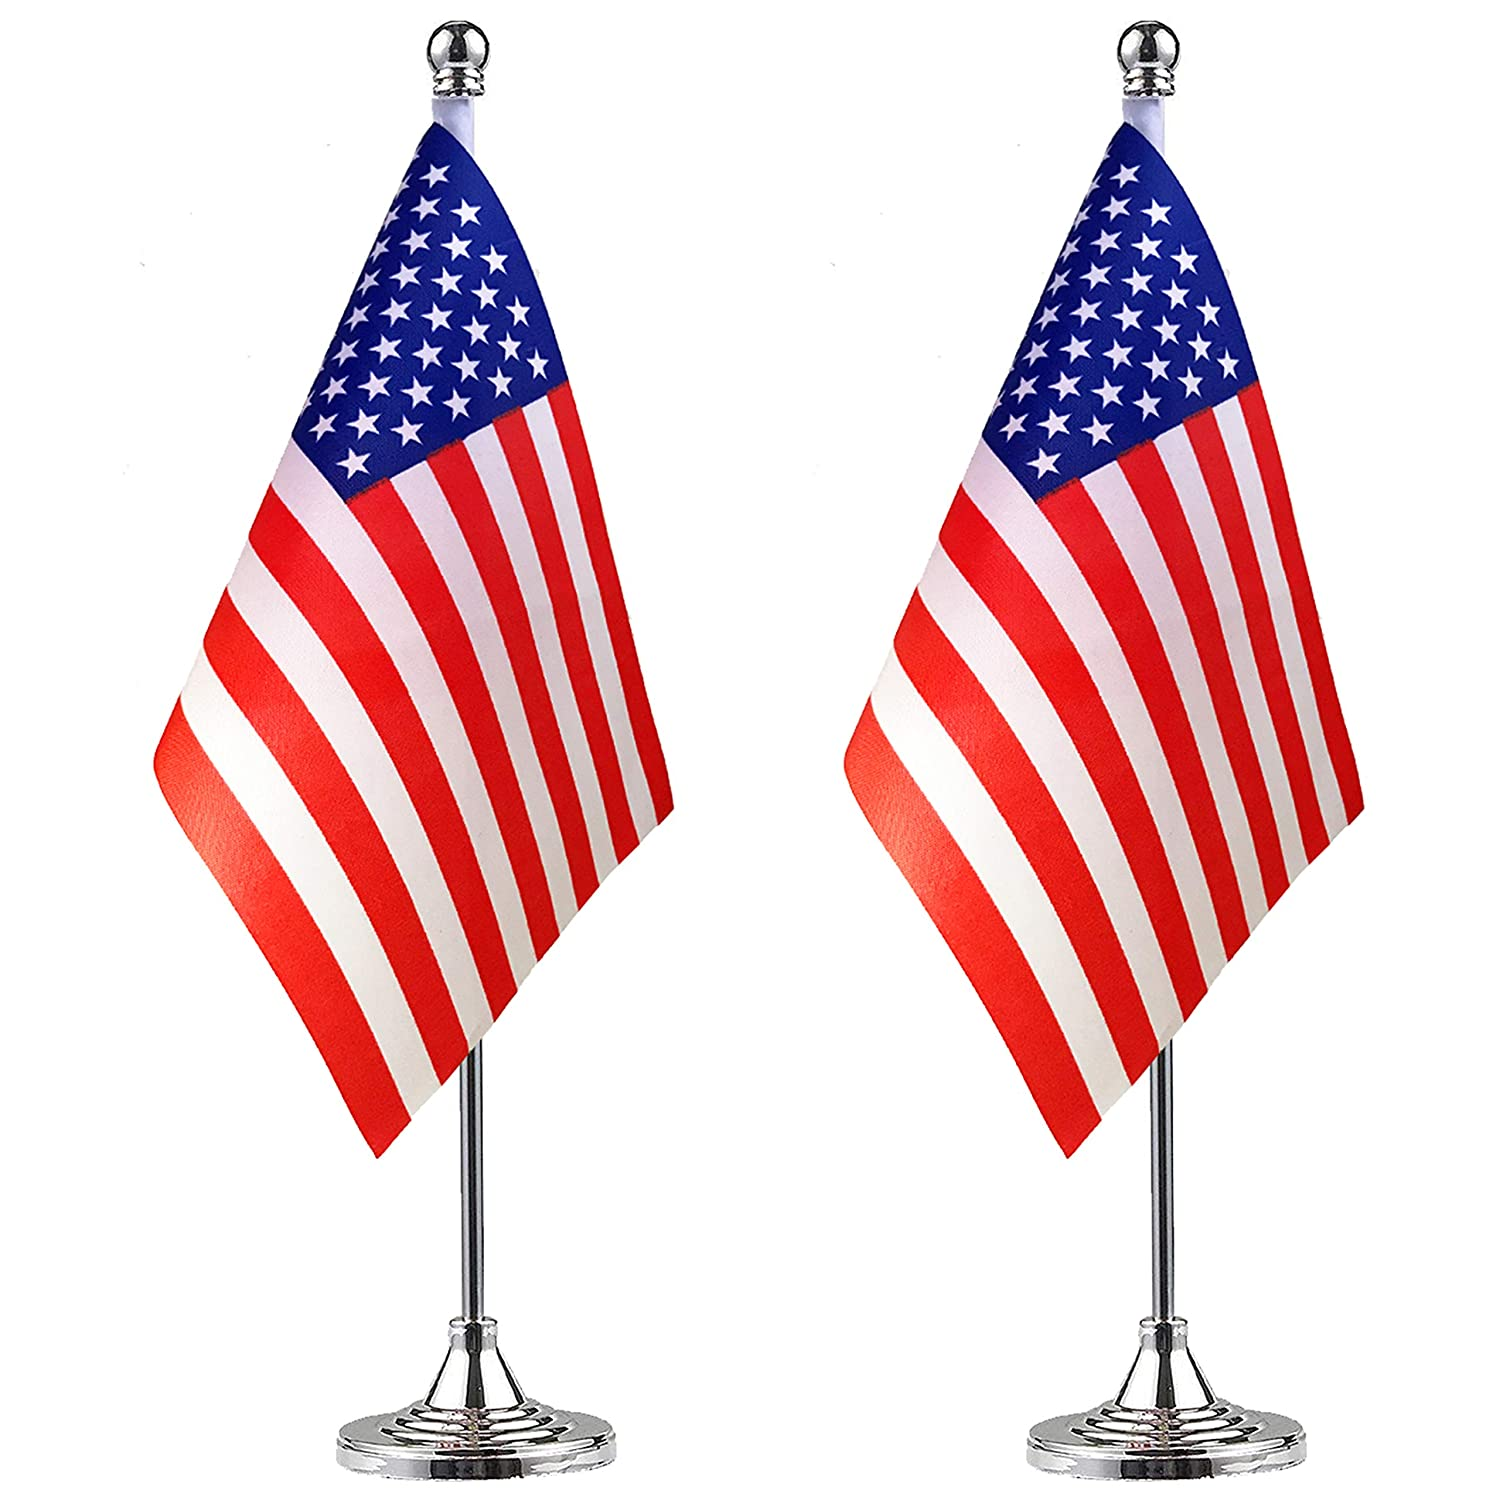 LoveVC USA American Desk Flag Small Mini US Office Table Flags with Stand Base,2 Pack